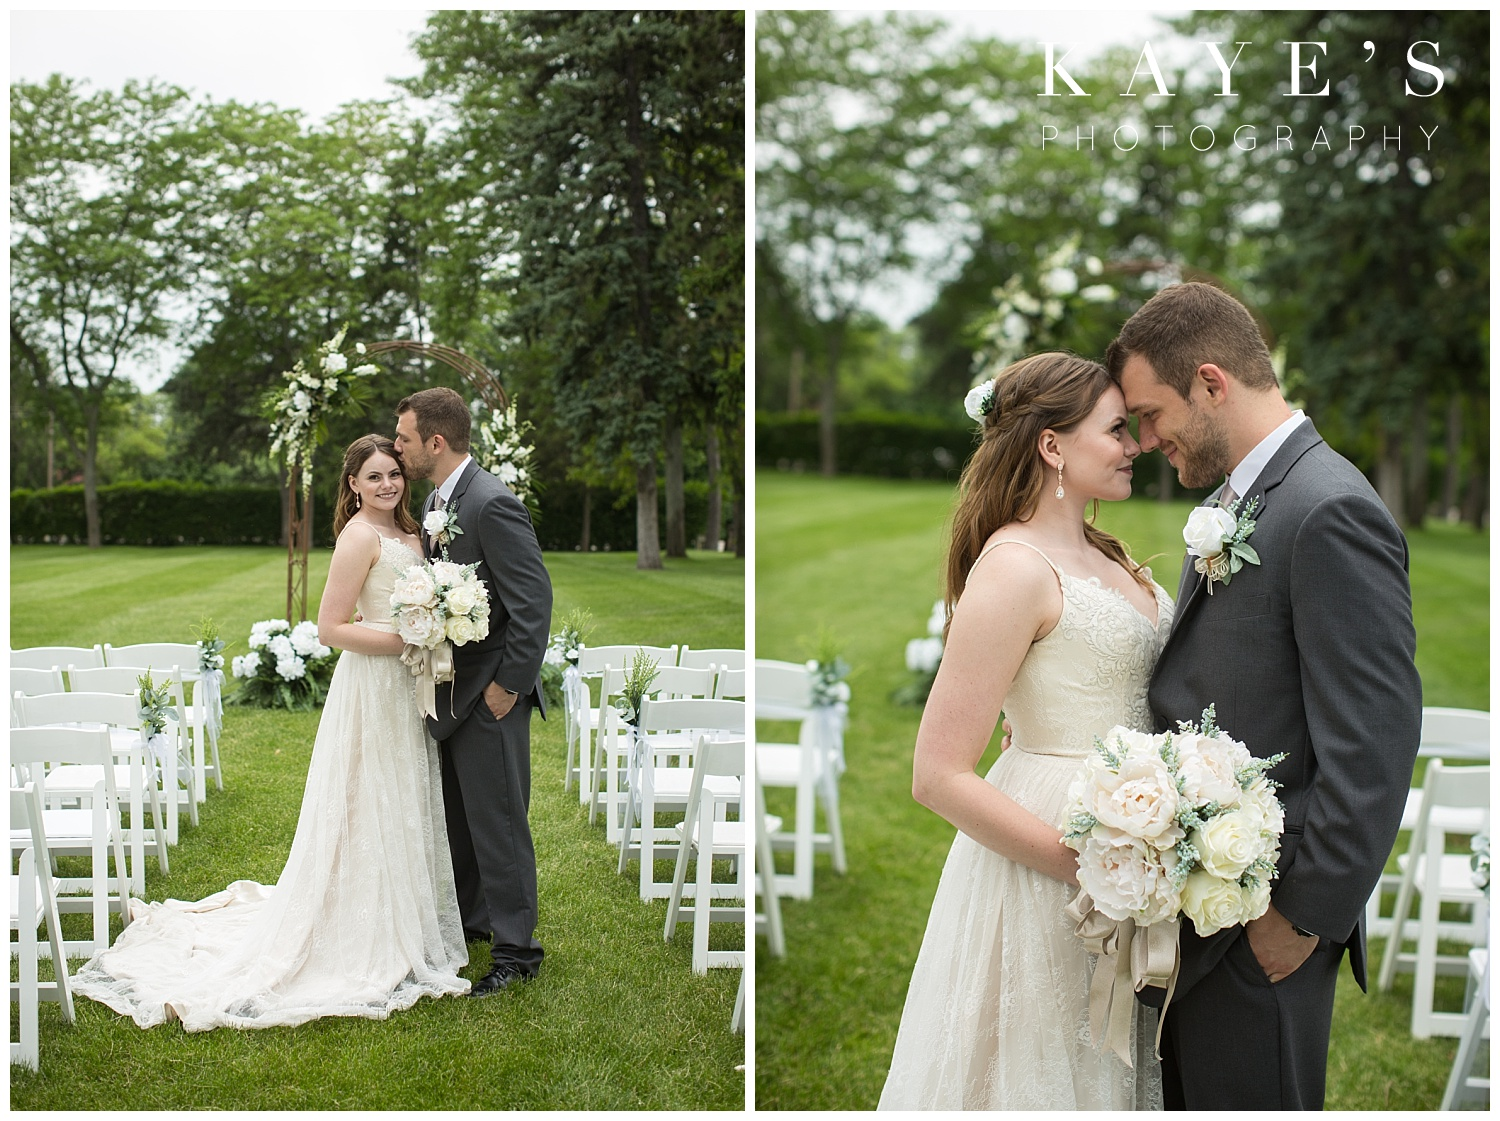 bride and groom portraits in the aisle of ceremony for wedding photos